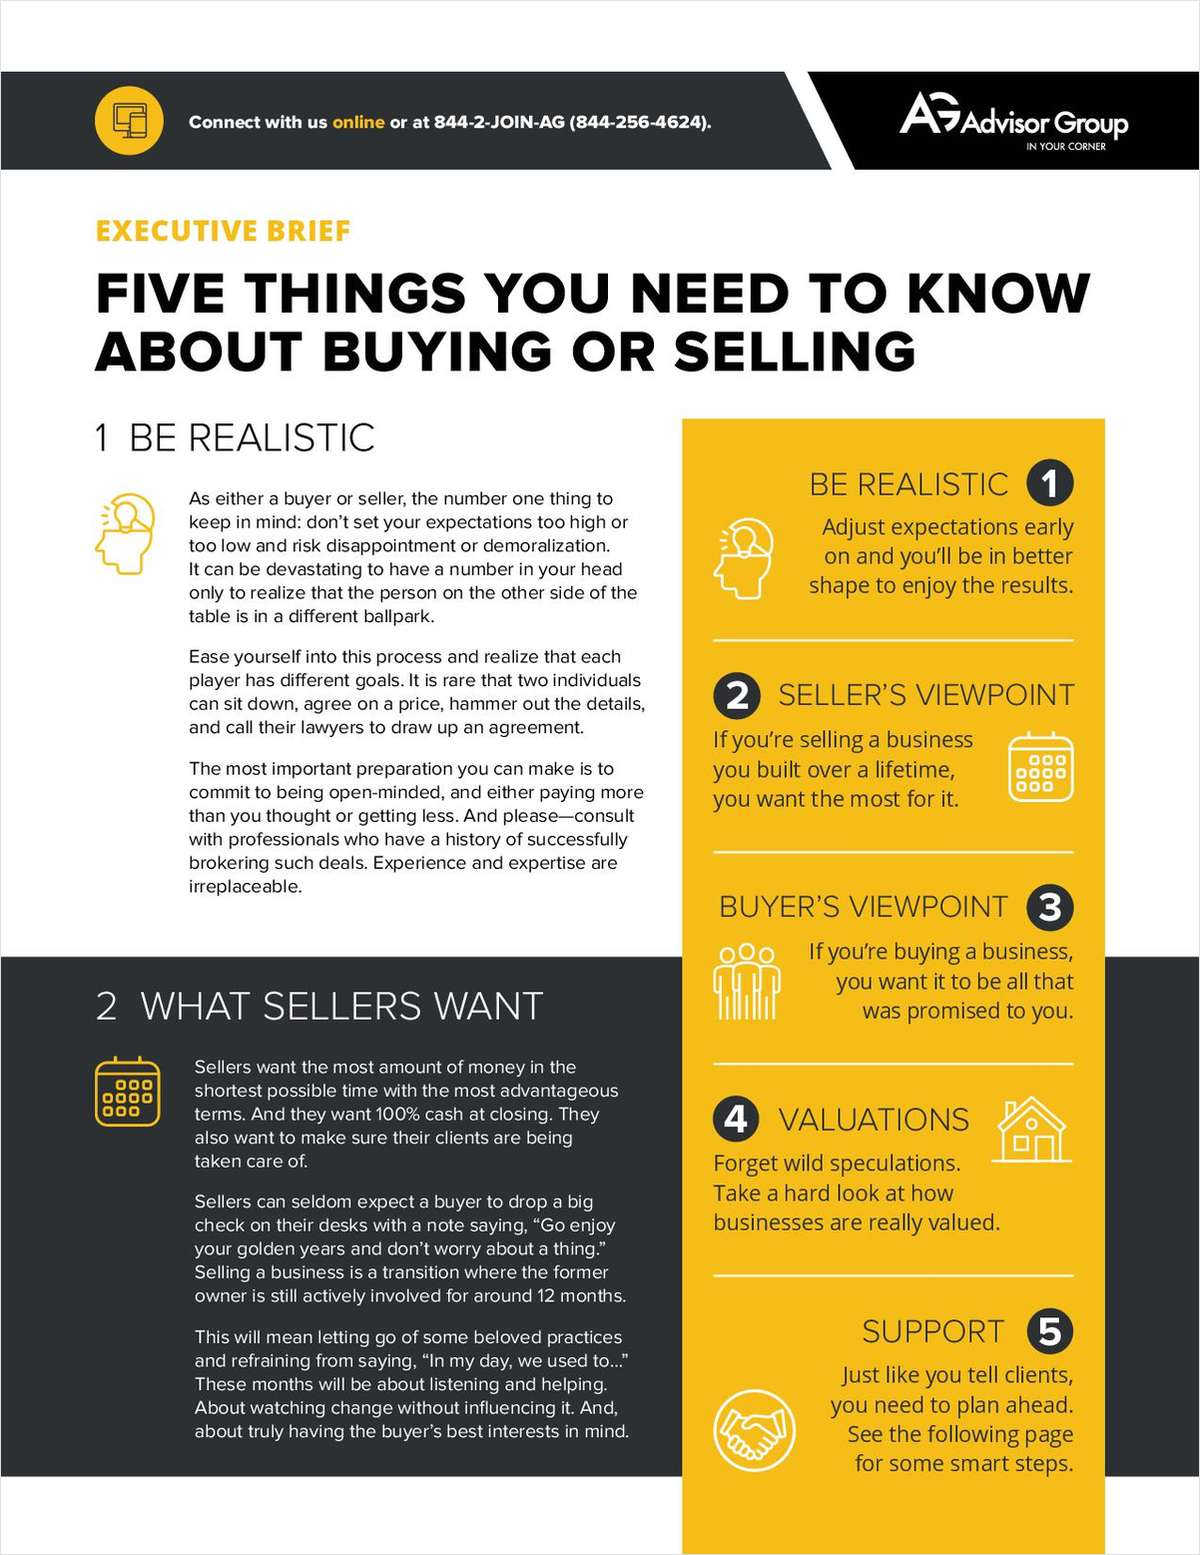 Five Things You Need to Know About Buying or Selling